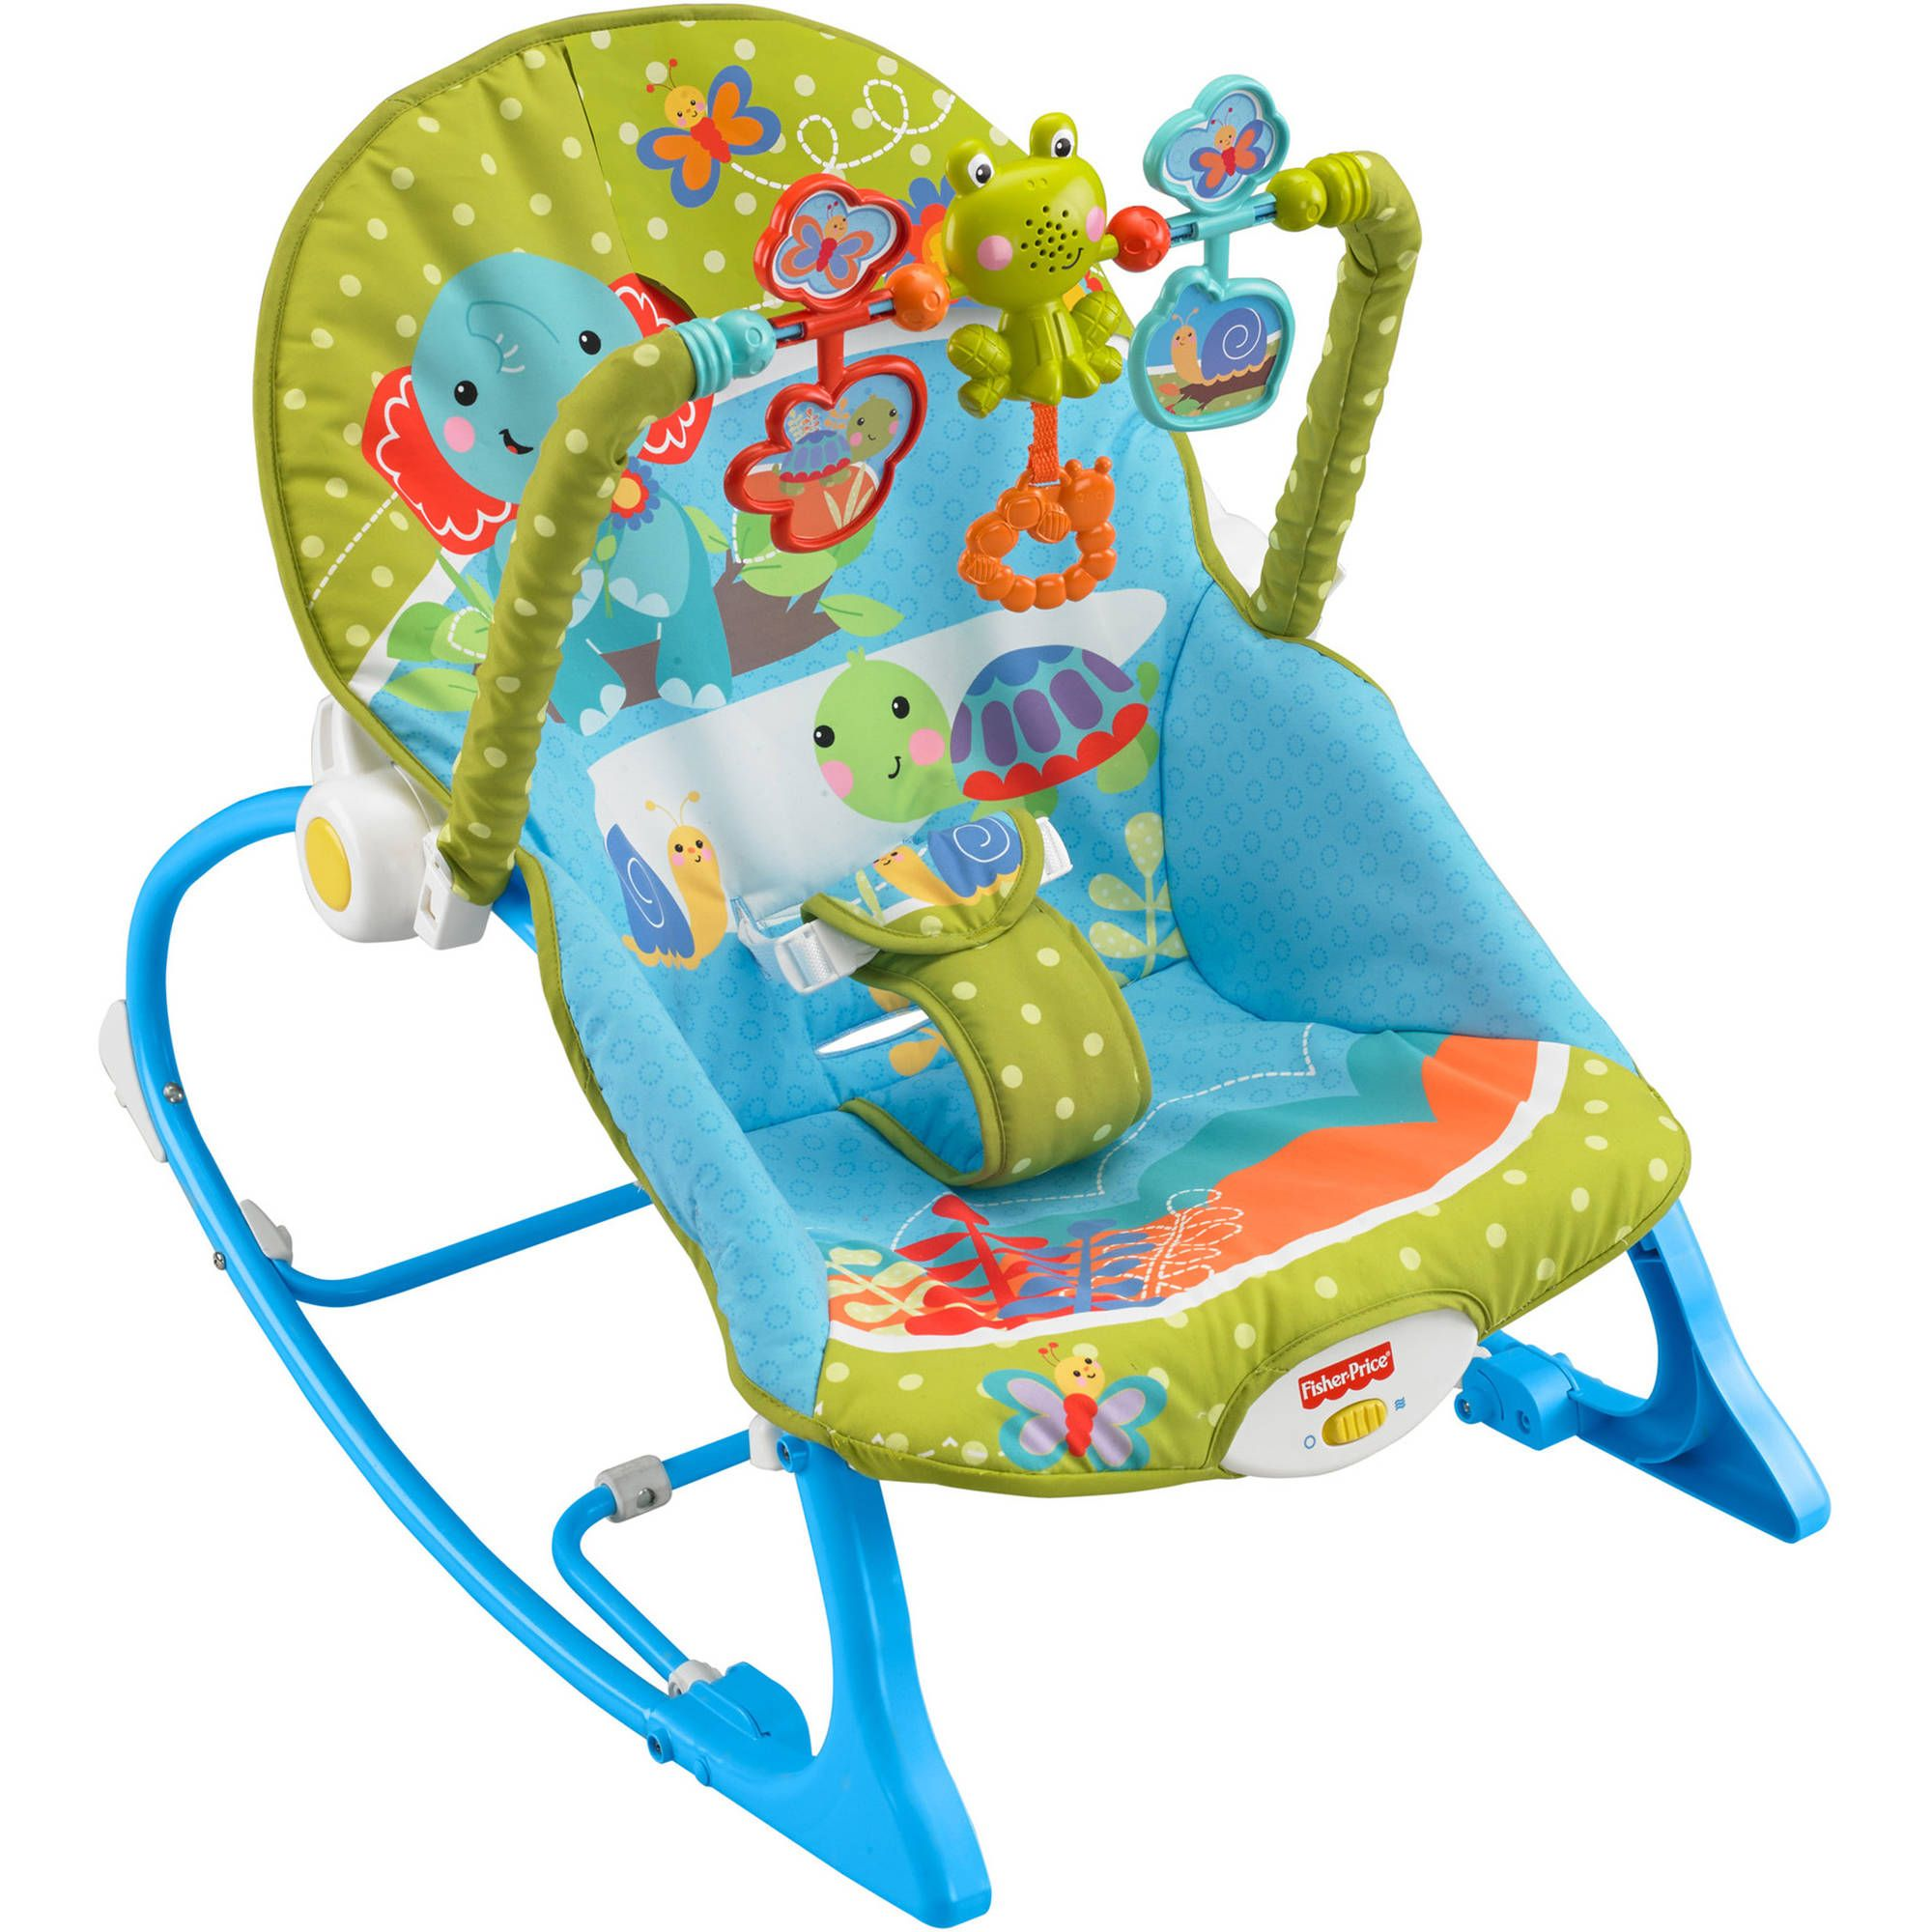 Fisher Price Infant to Toddler Rocker Elephant Friends for $25